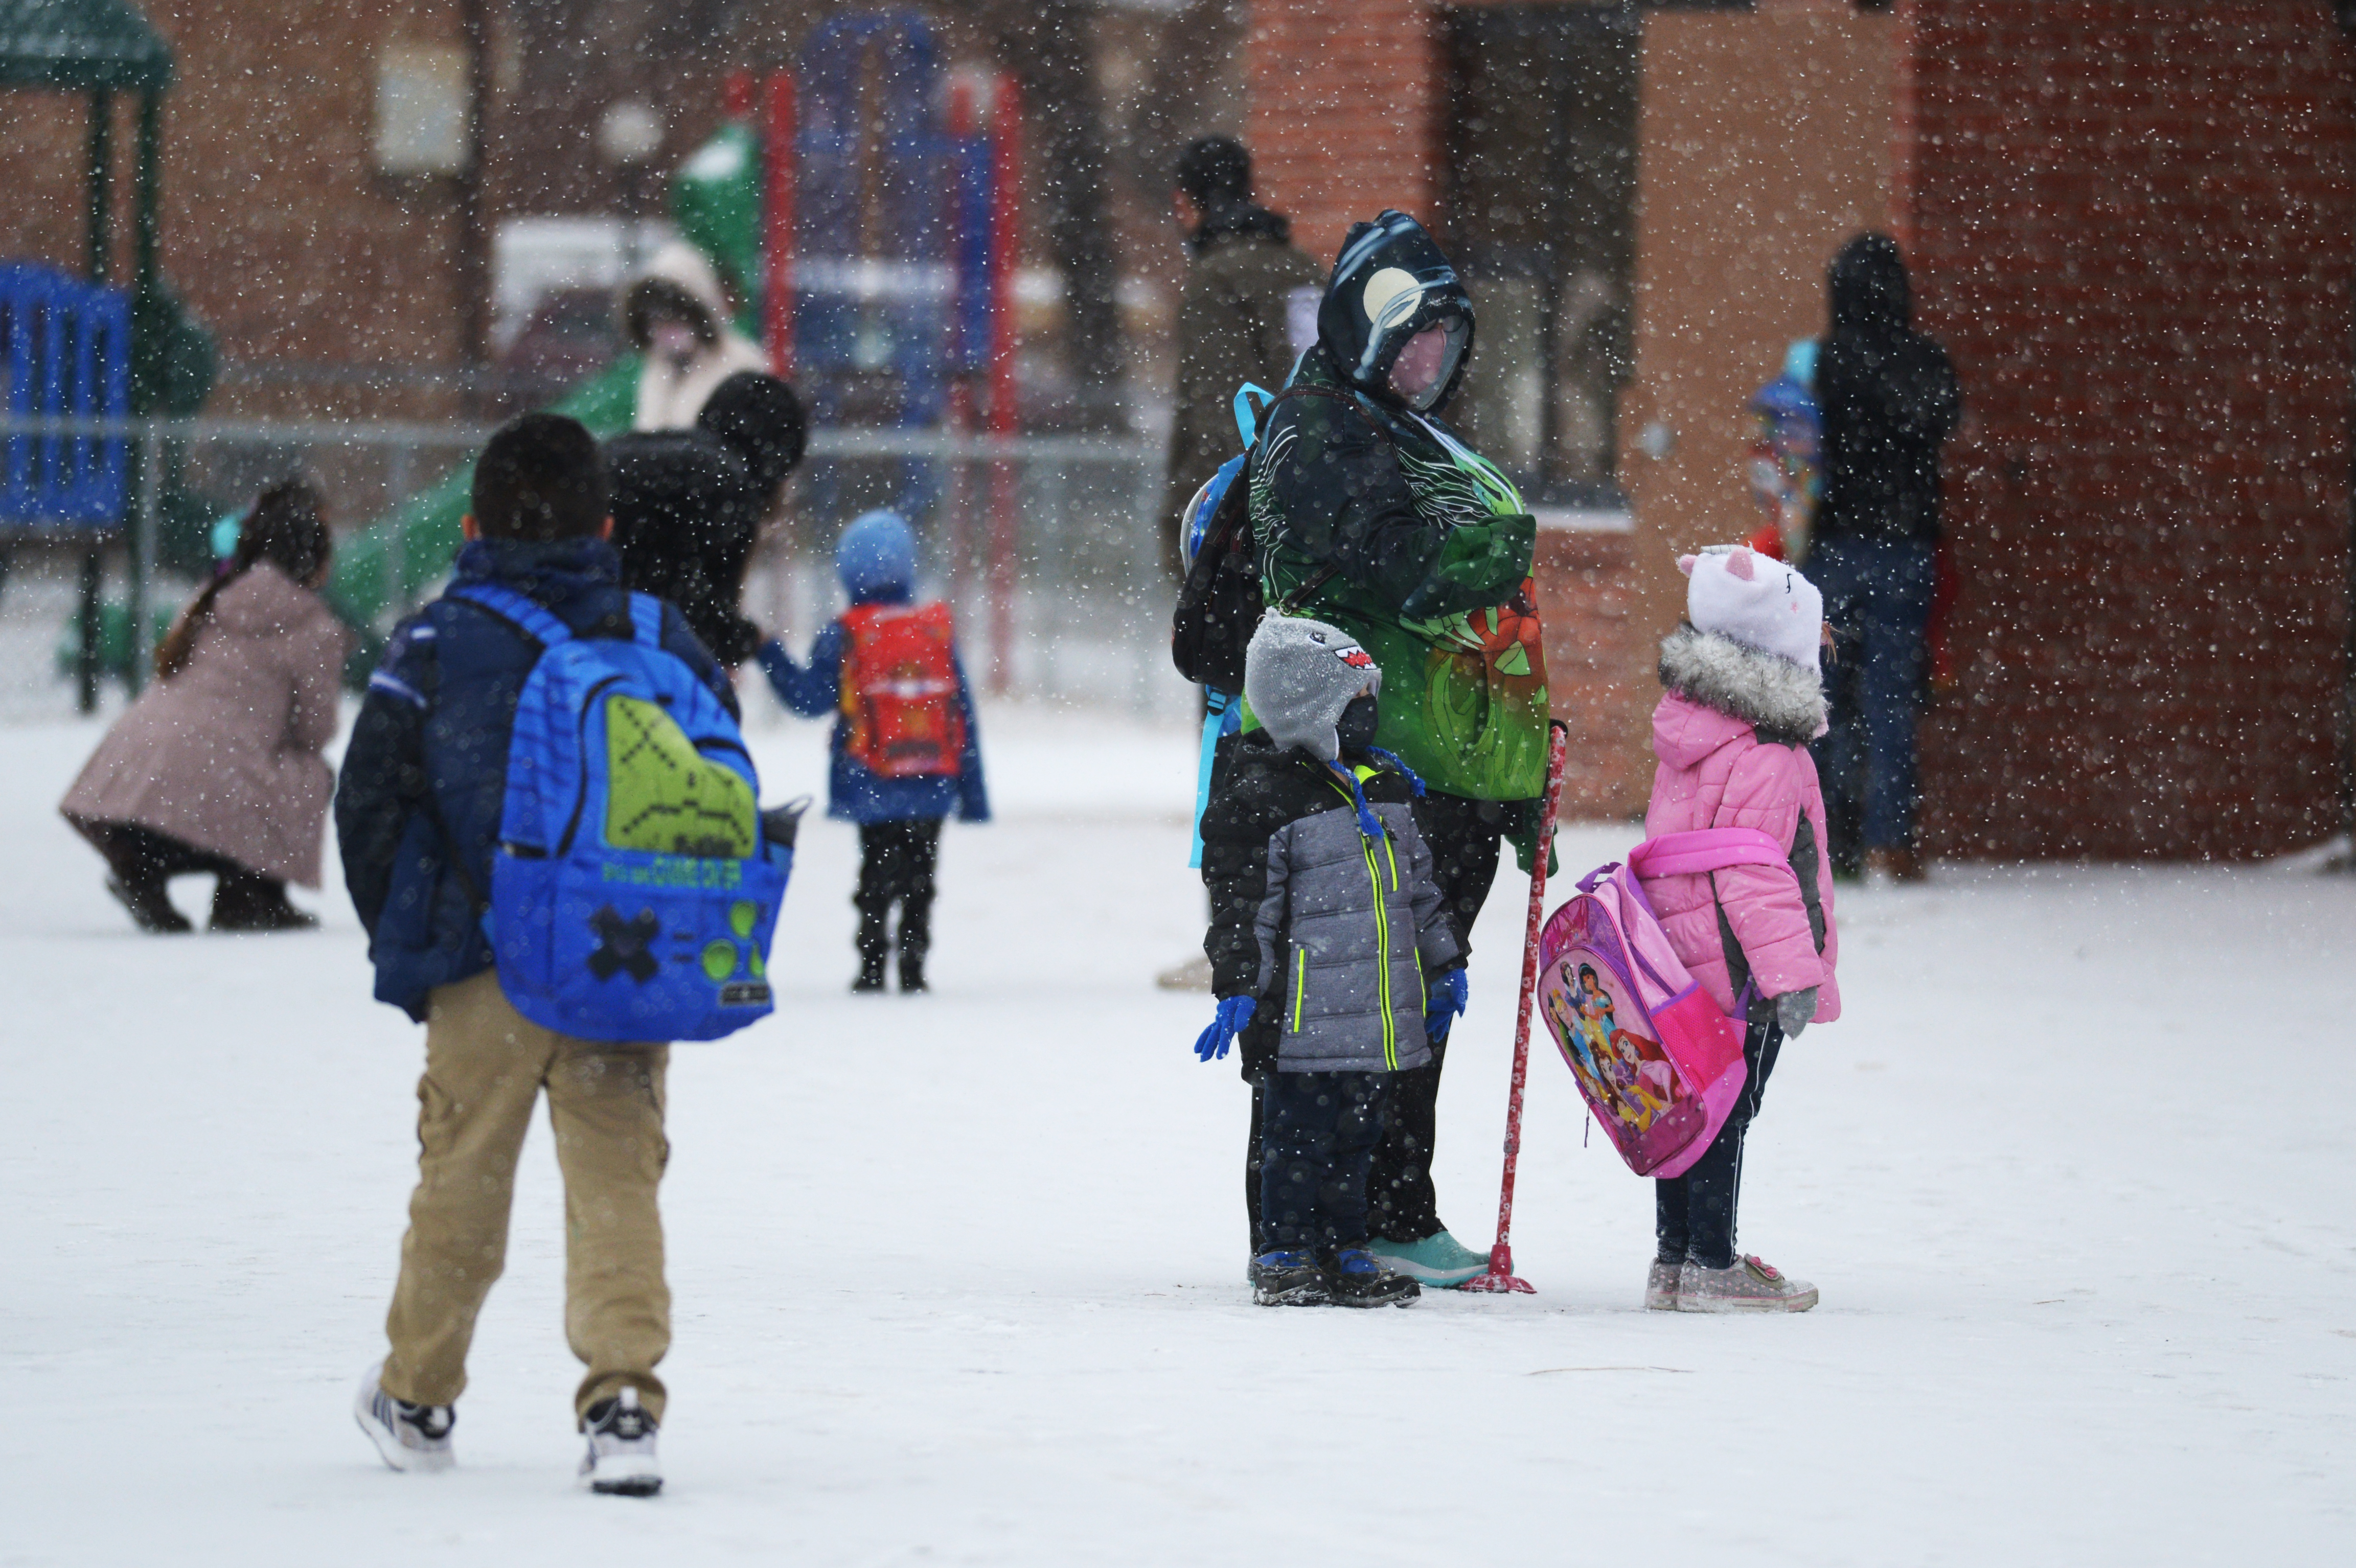 Students and parents wearing masks and winter coats wait outside a school building on a snowy day.